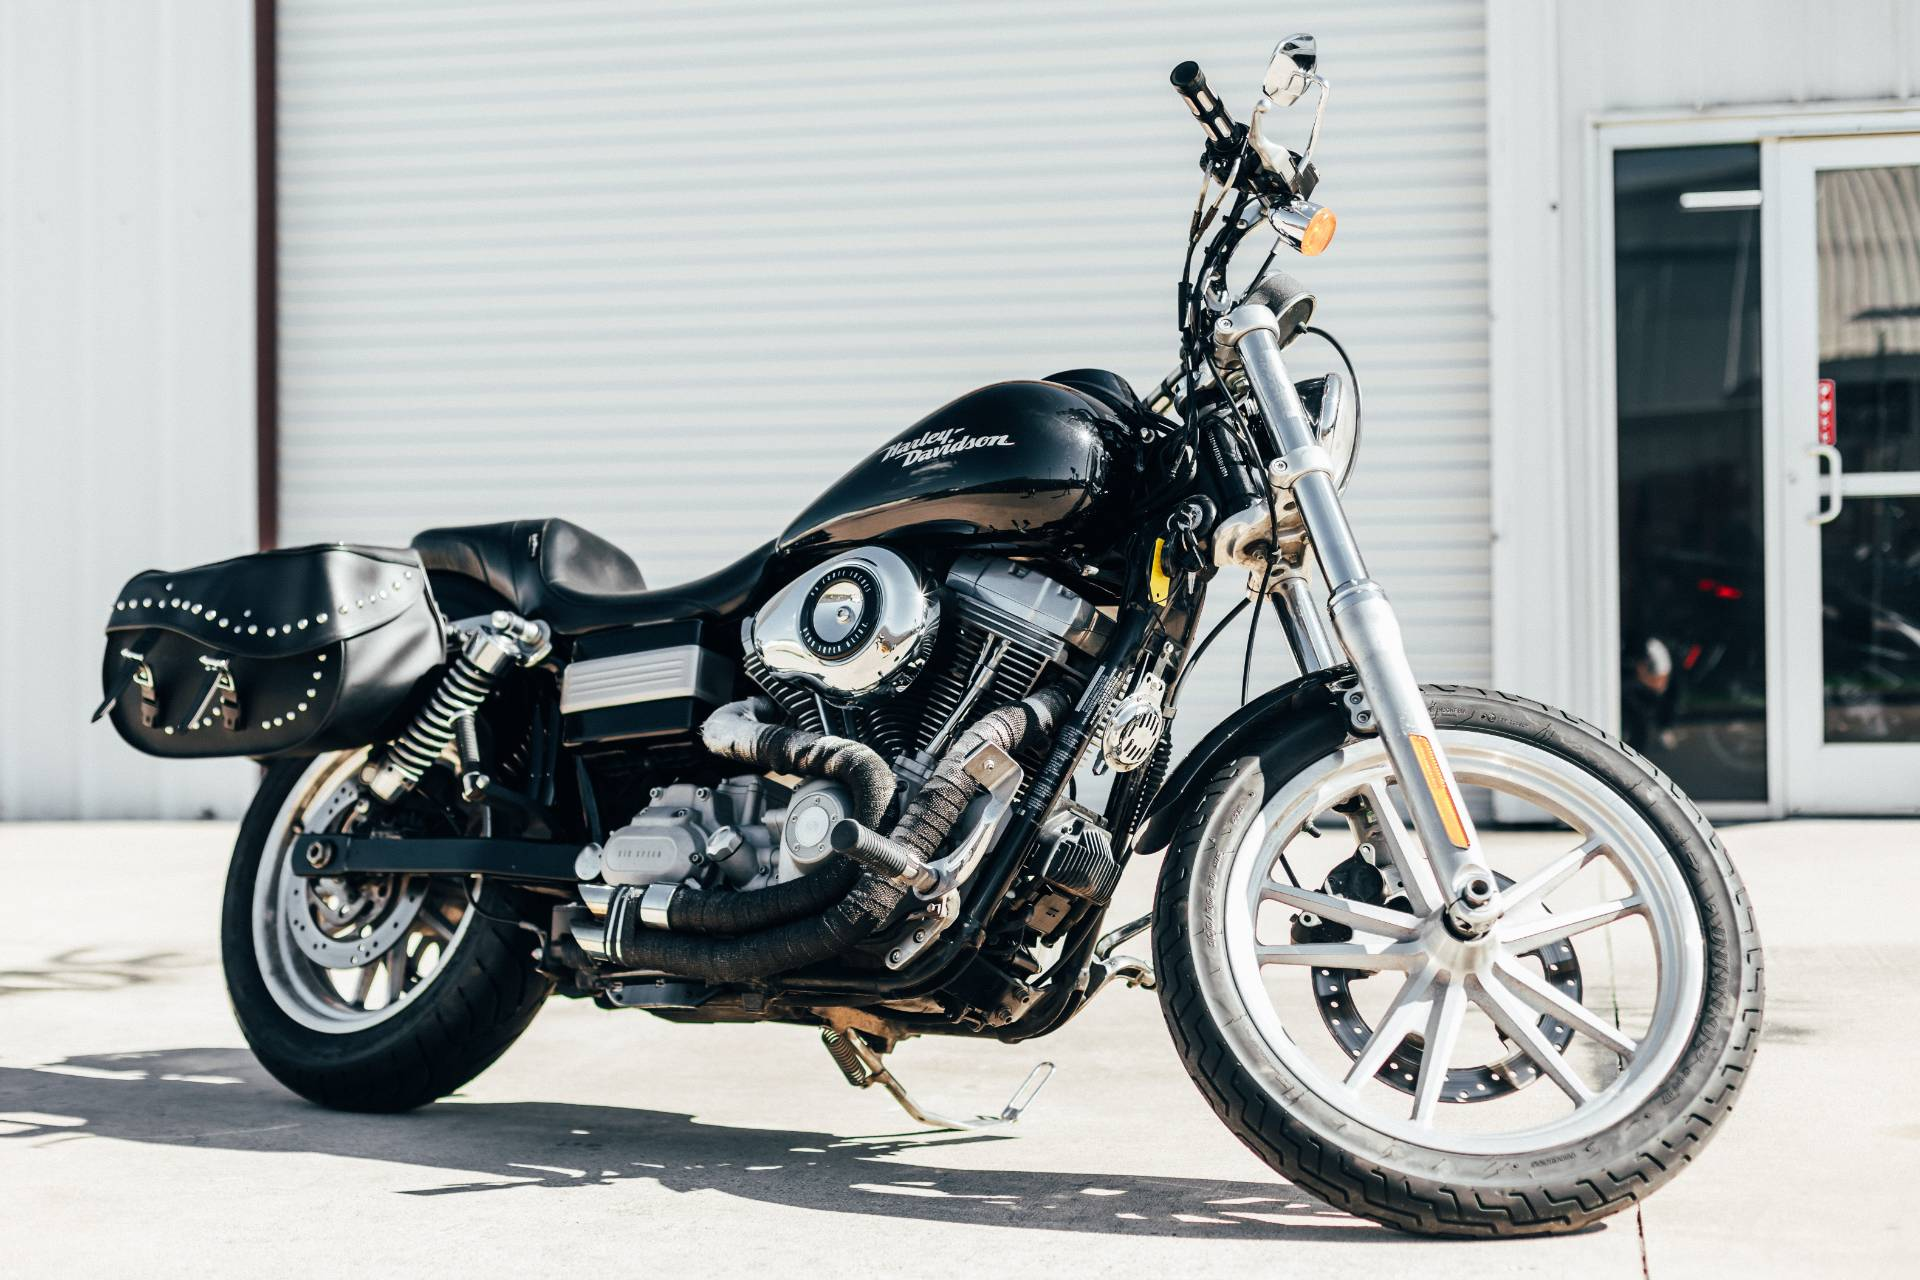 Used 2008 Harley Davidson Dyna Super Glide Motorcycles In Houston Tx Stock Number 150u305109